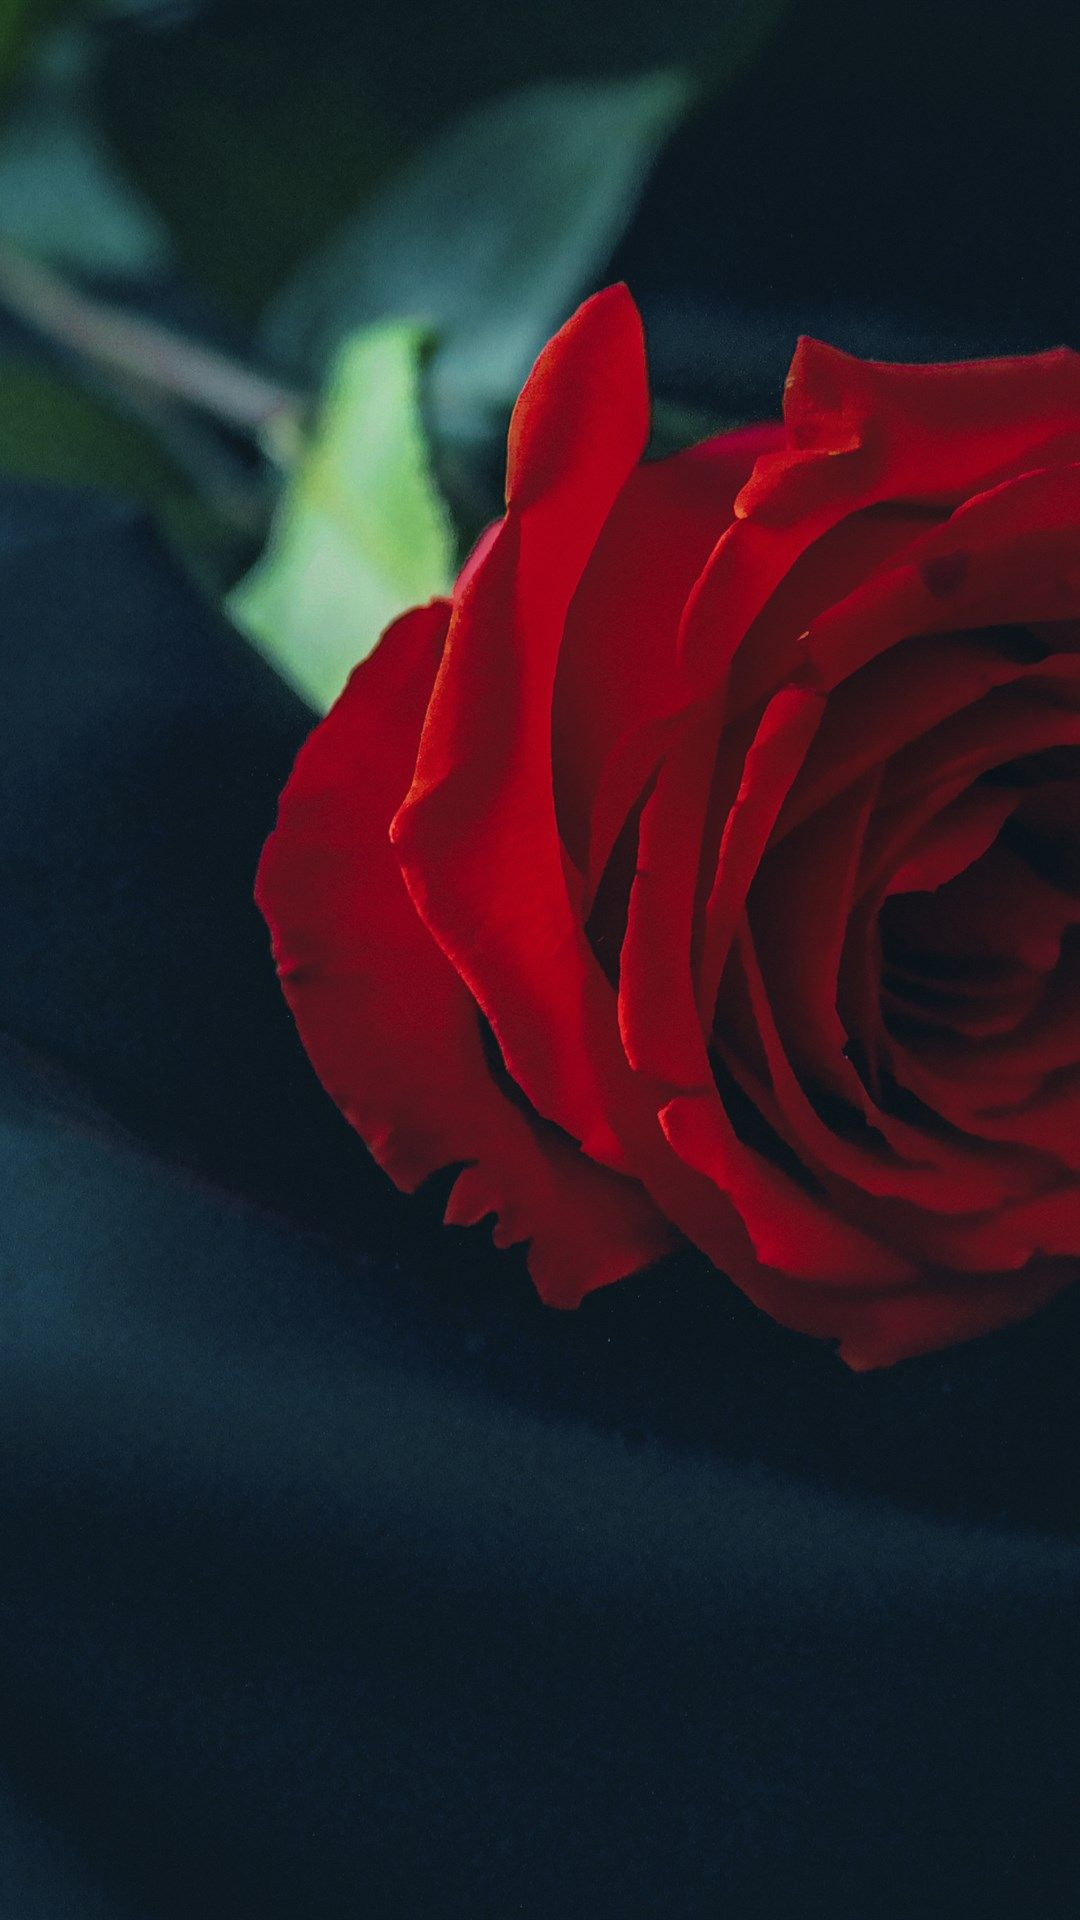 Black Silk Red Roses 4k Close Up Red Flowers Bokeh Roses Beautiful Rose Flowers Red Flower Wallpaper Red Roses